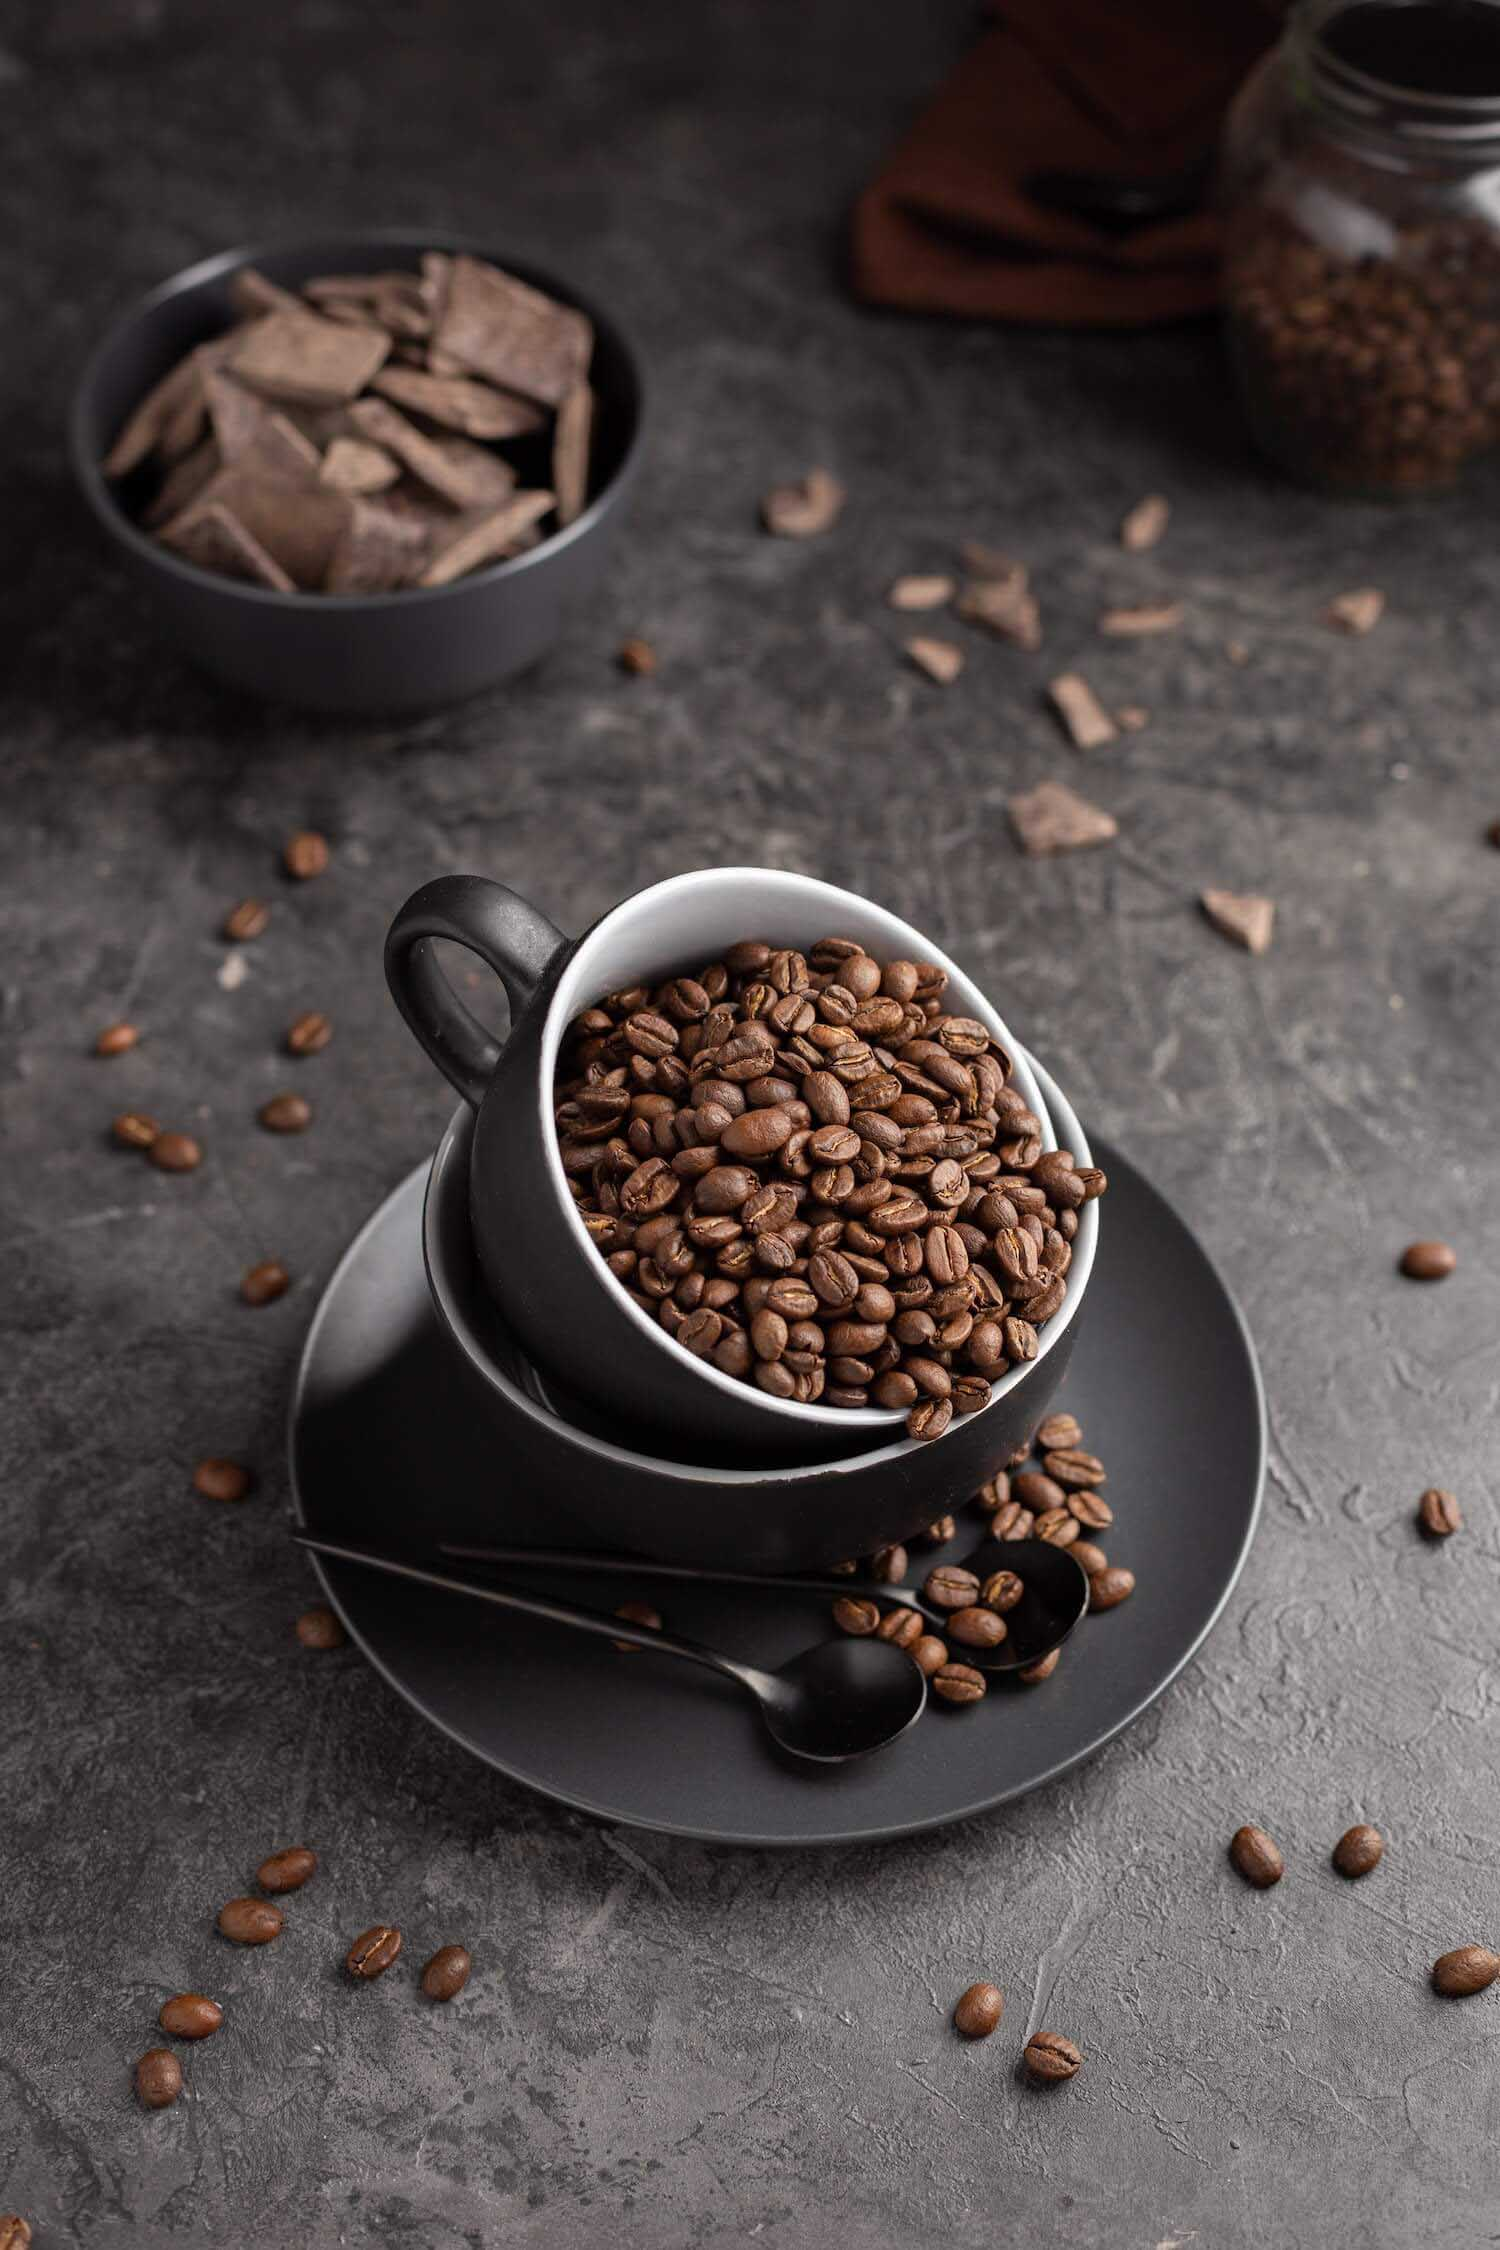 TCE-COFFEE-IMAGES-909